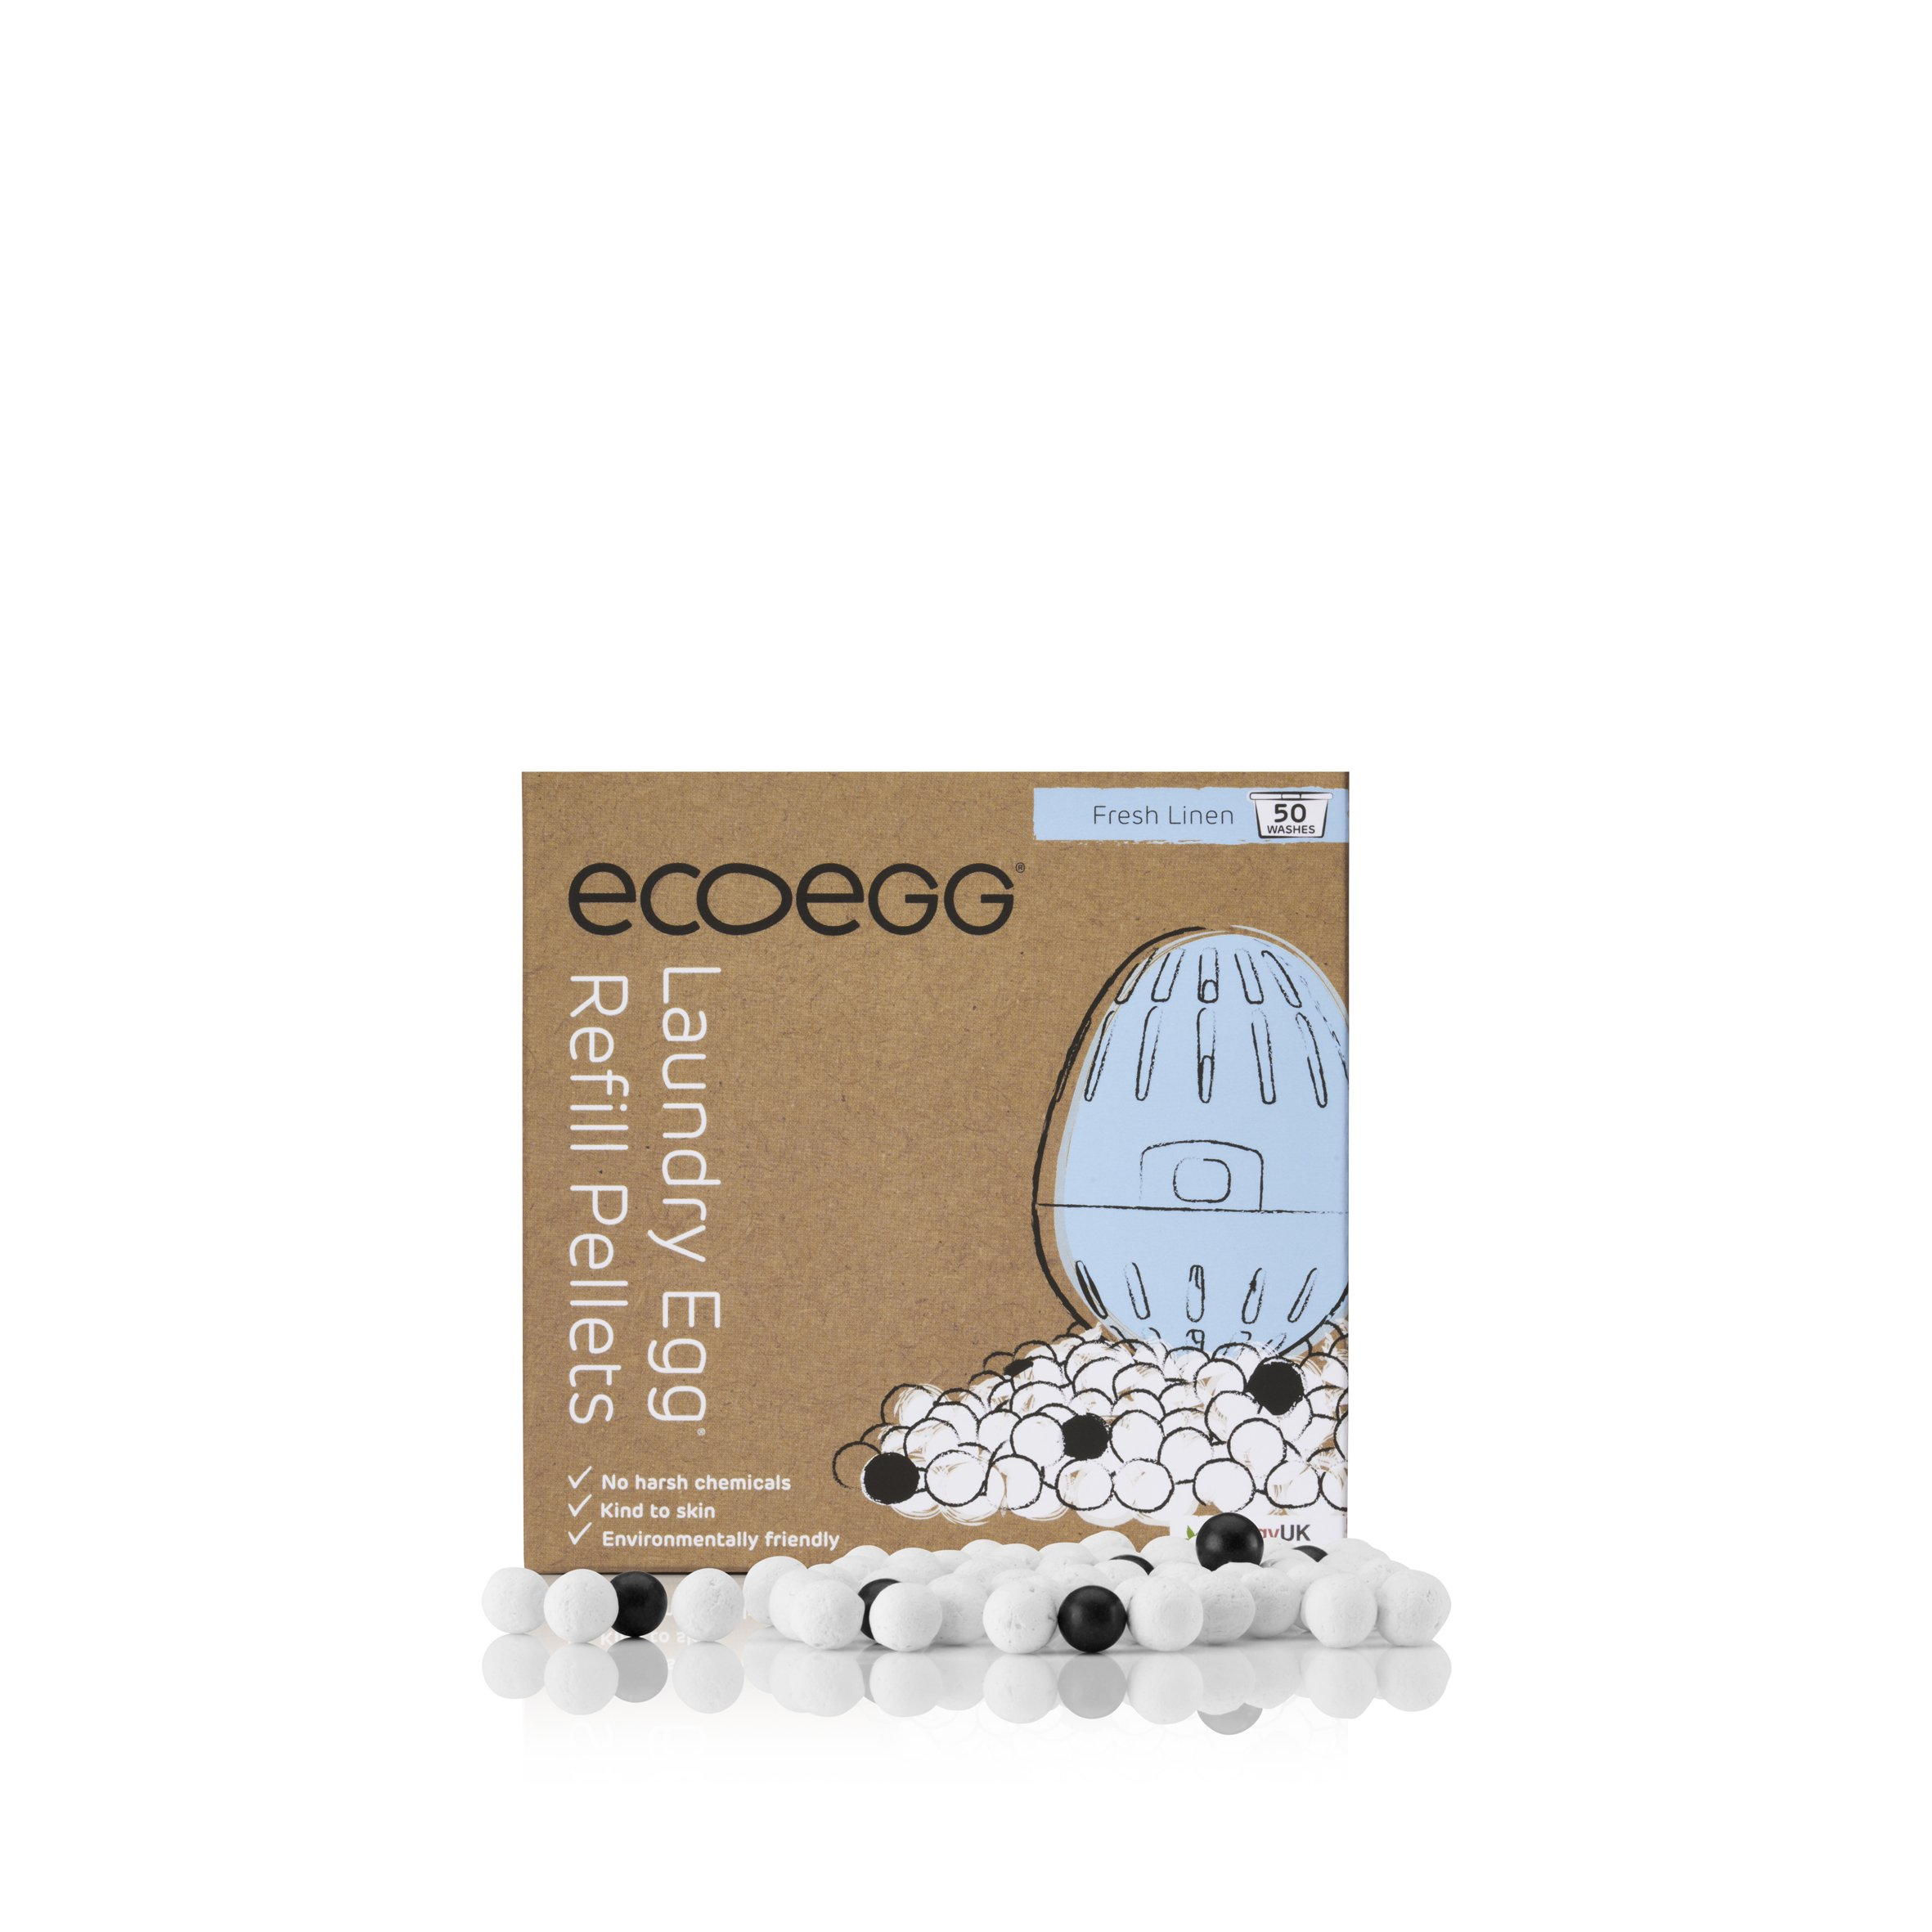 ecoegg Laundry Egg Refills - 50 washes